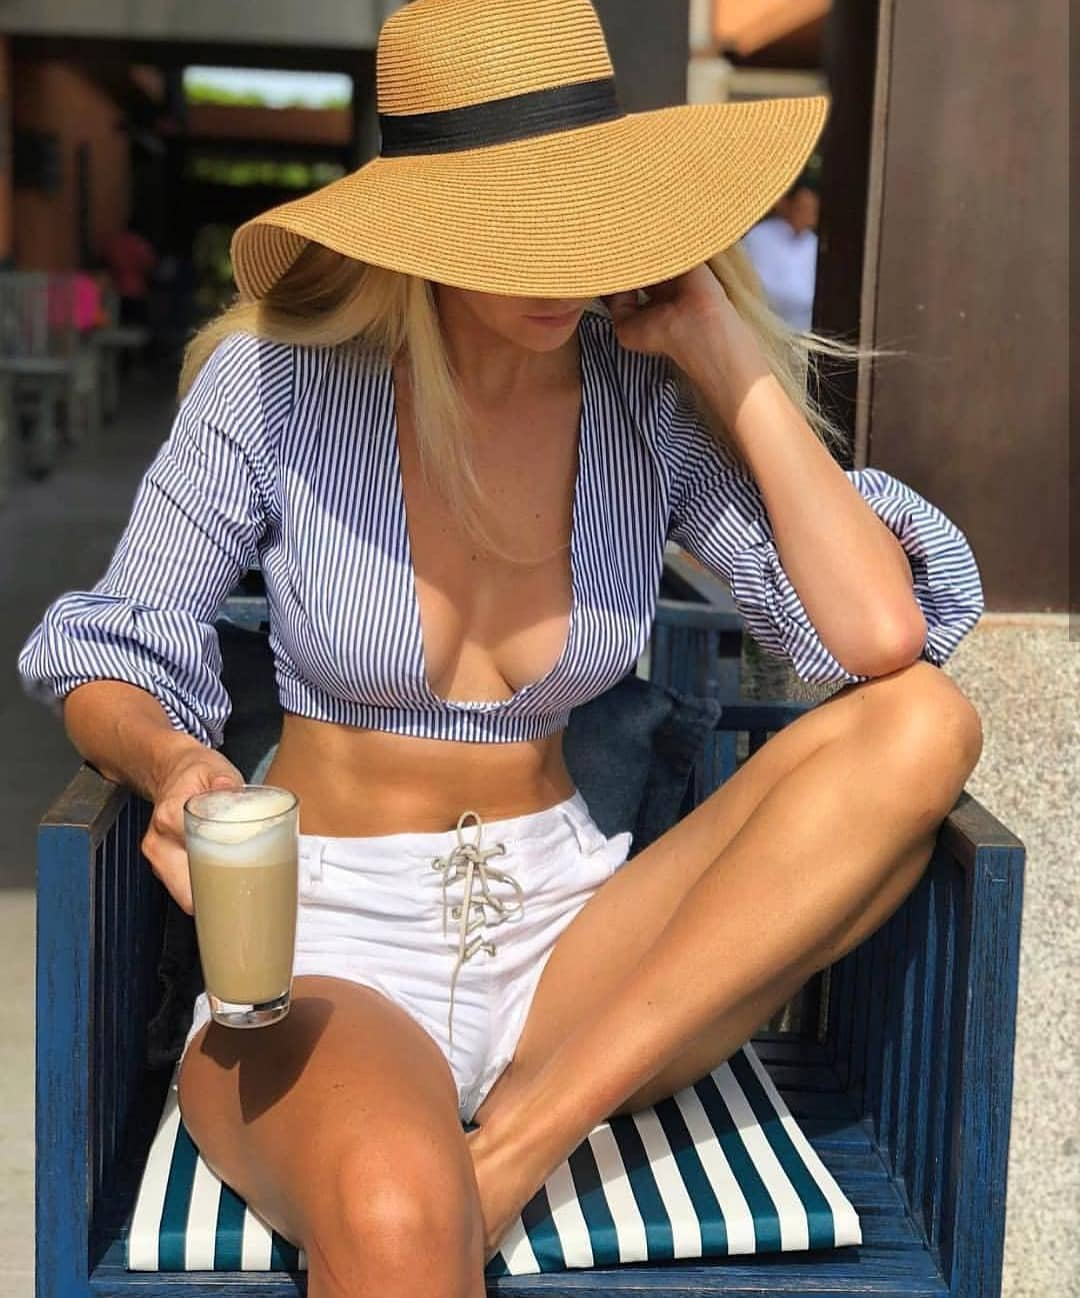 Pinstripe Crop Top With Deep Neckline And White Shorts For Summer 2020